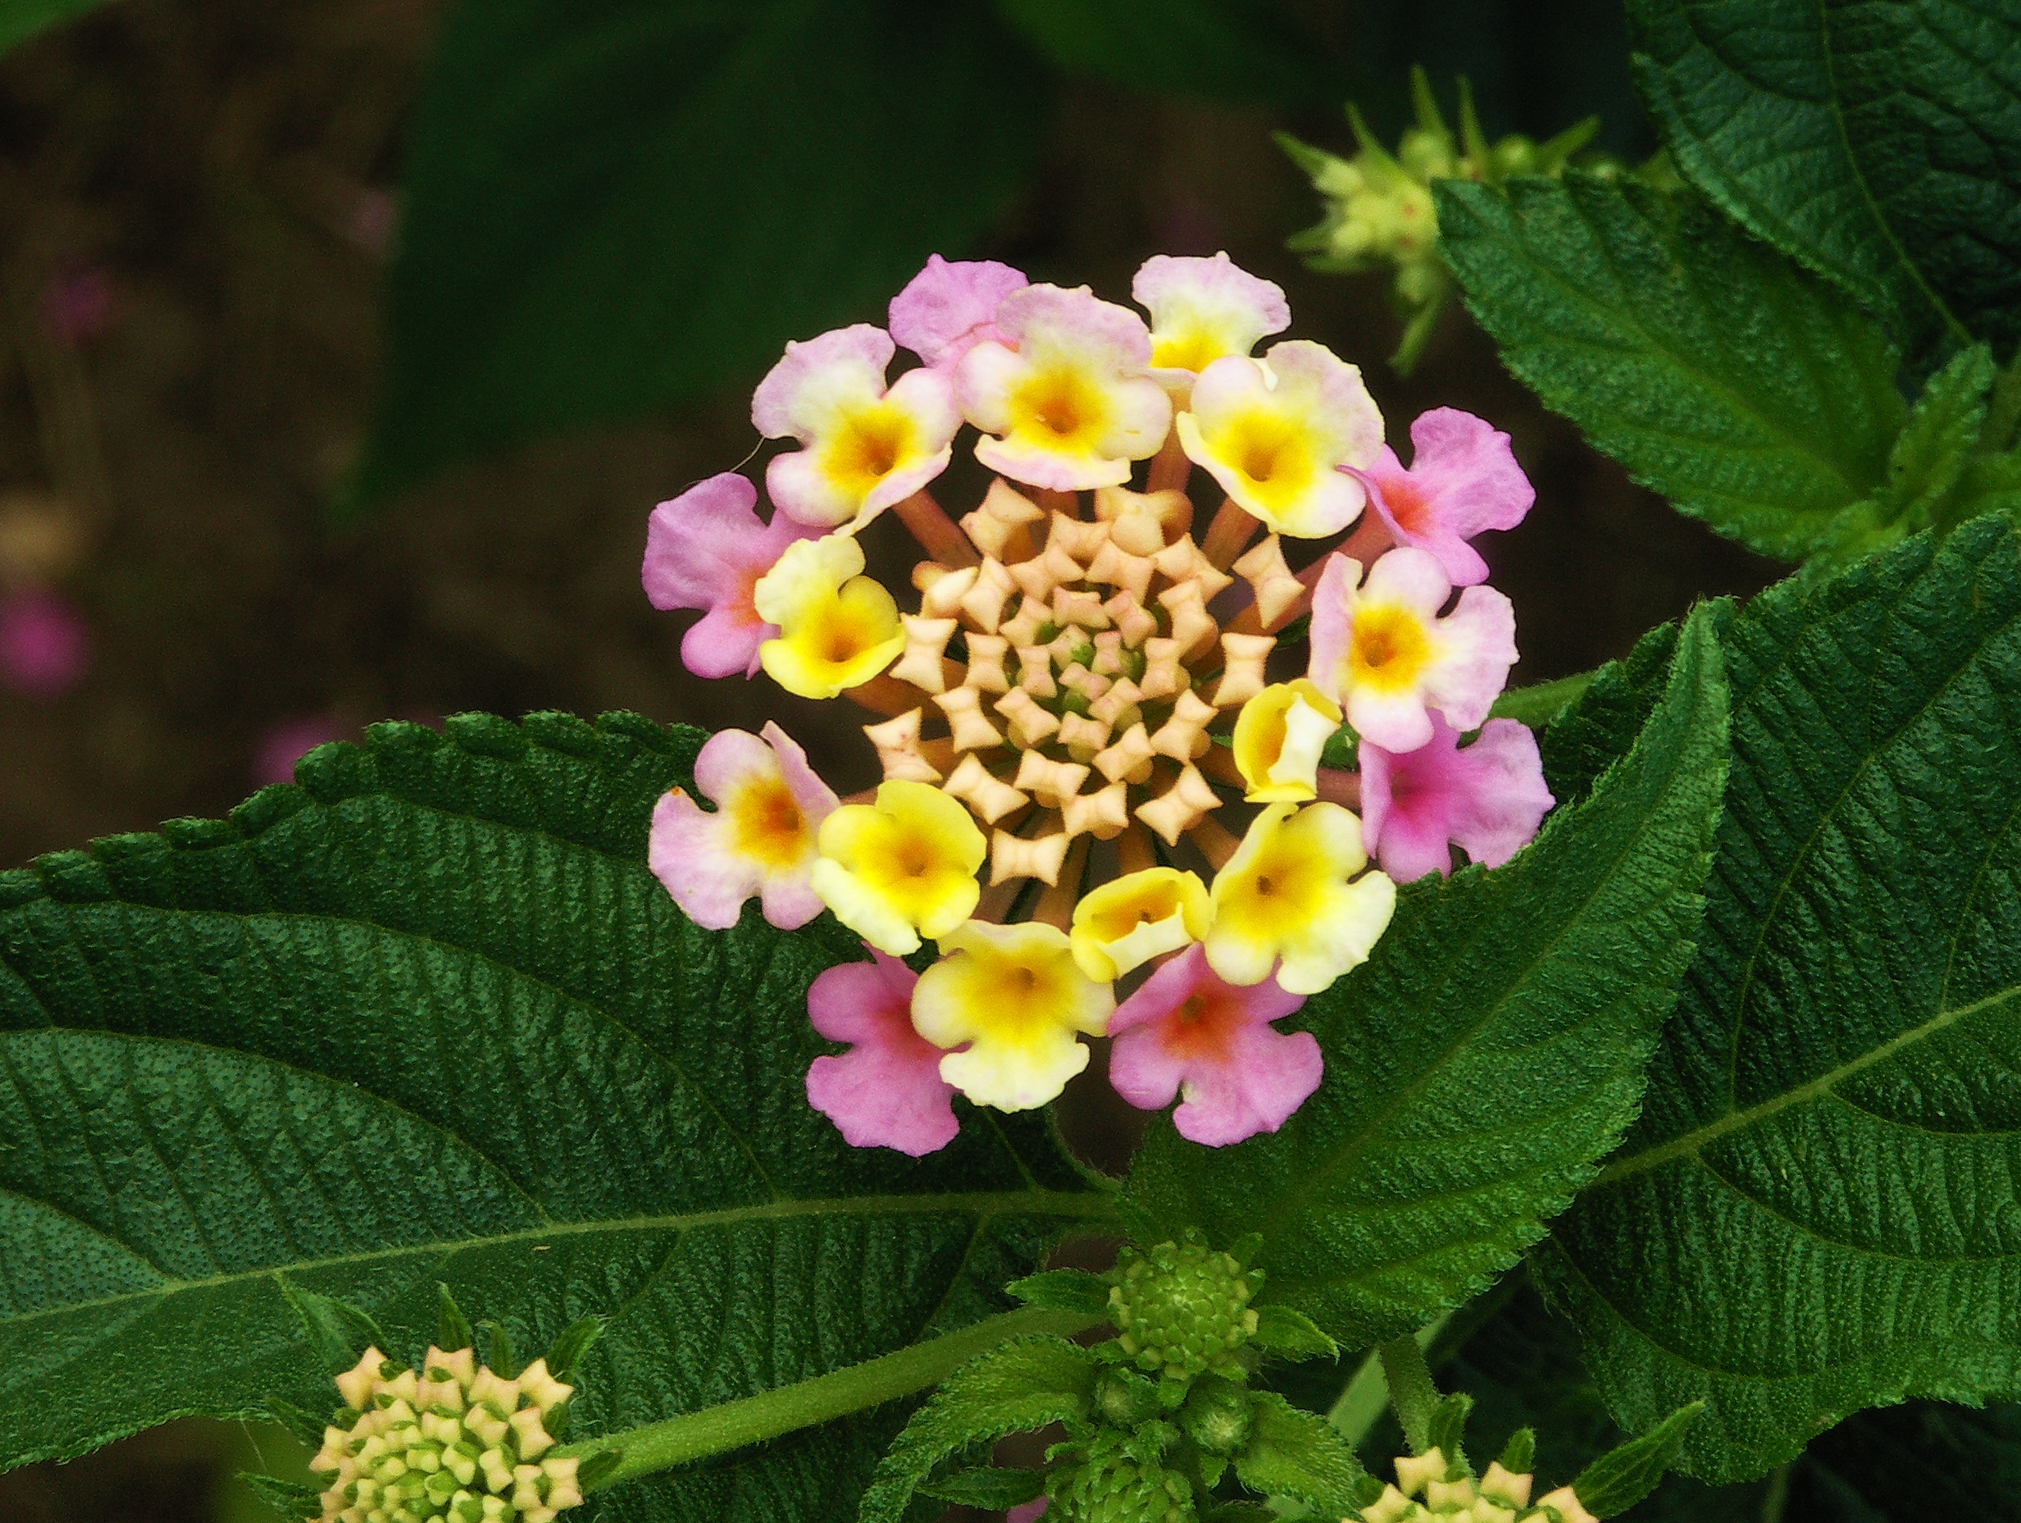 Wikipedia:Featured picture candidates/Lantana flower and leaves ...